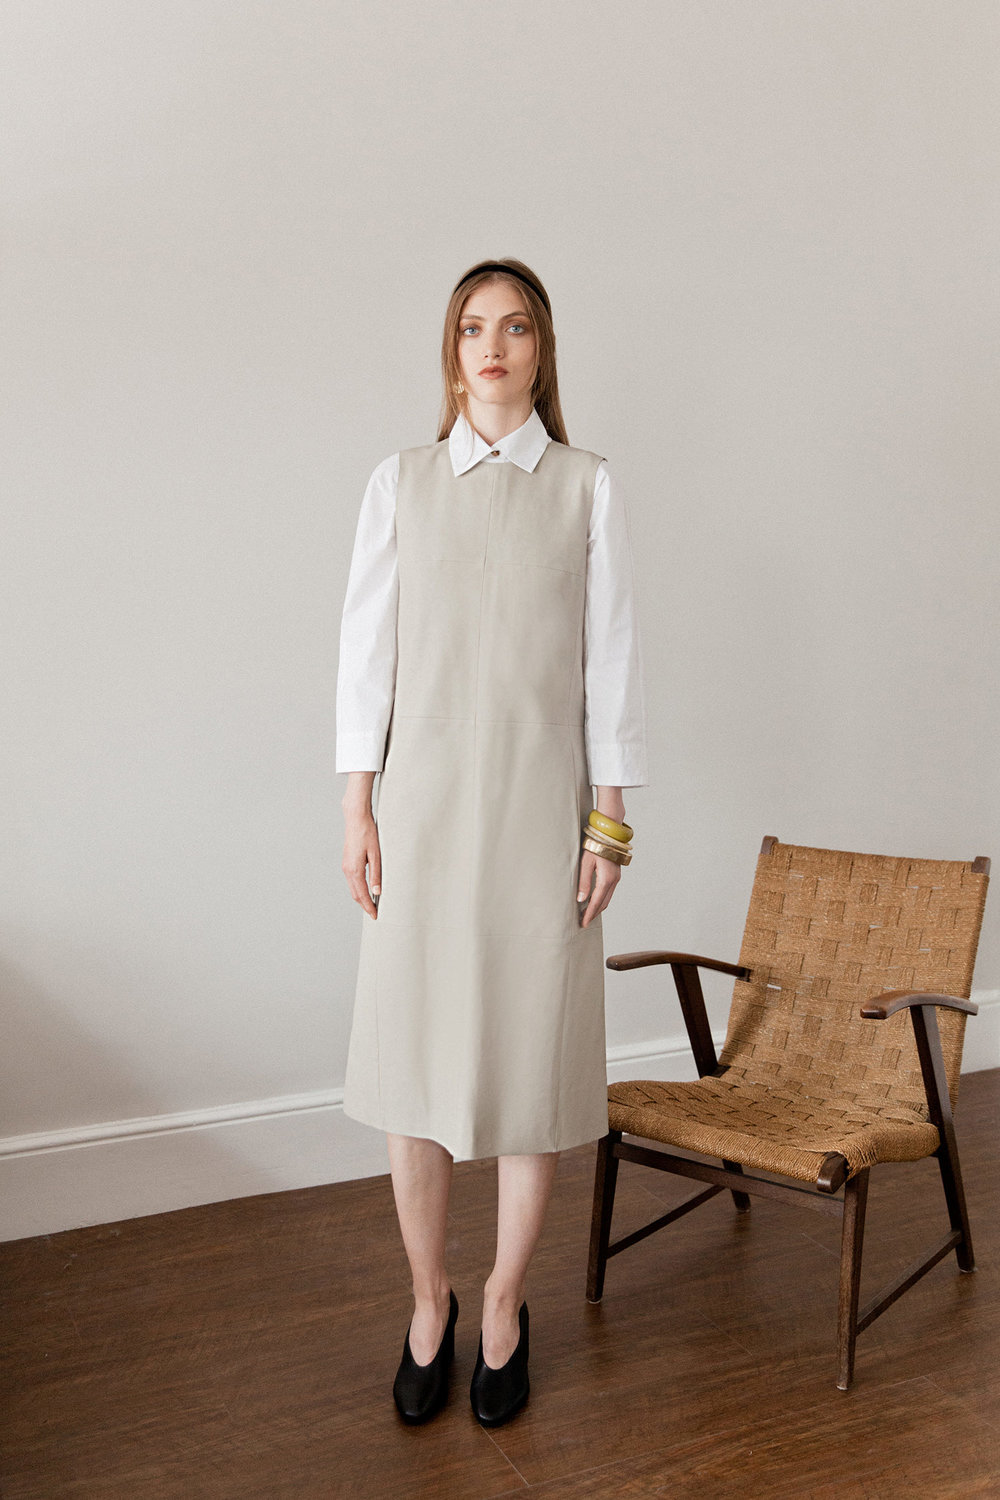 Sculptured leather dress in mineral grey, £290, COS; Jan Machenhauer white shirt, £149, Found; Black leather block heel shoes, £55, M&S; No.25 earrings, £35, Alice Bosc; Brass, Bakelite and Lucite bangles, from a selection, Heavens Bazaar